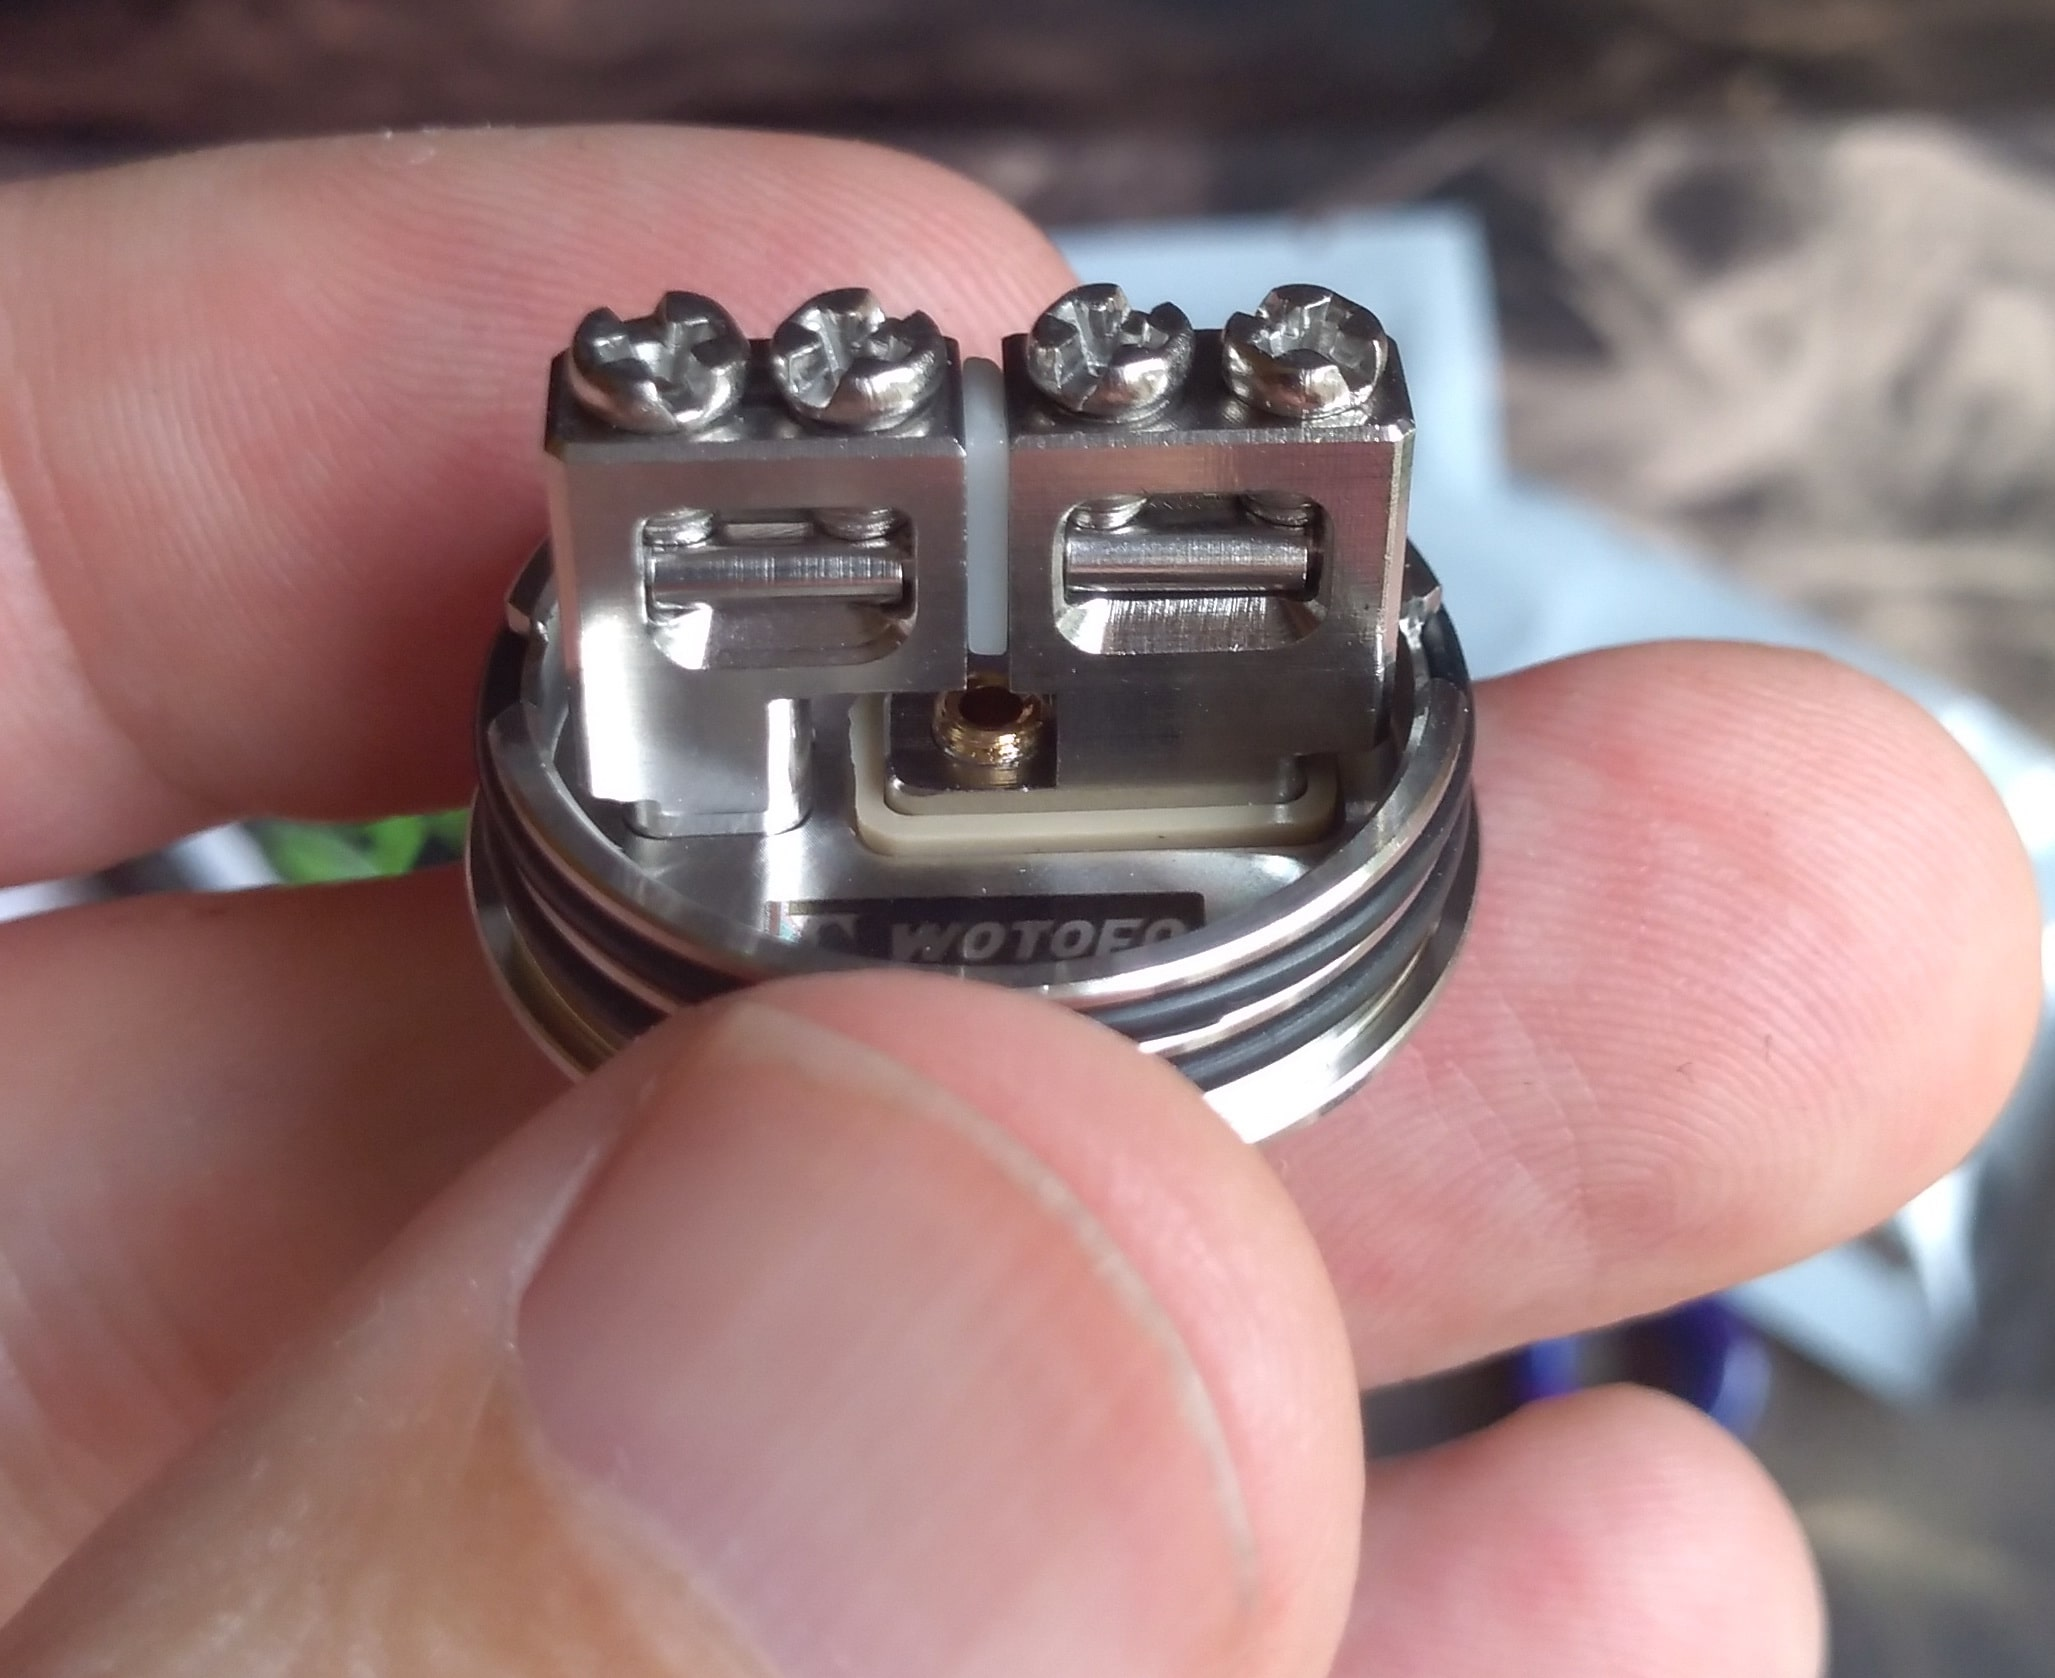 Wotofo Warrior BF RDA deck with a lot of coil building space and juice feeding hole